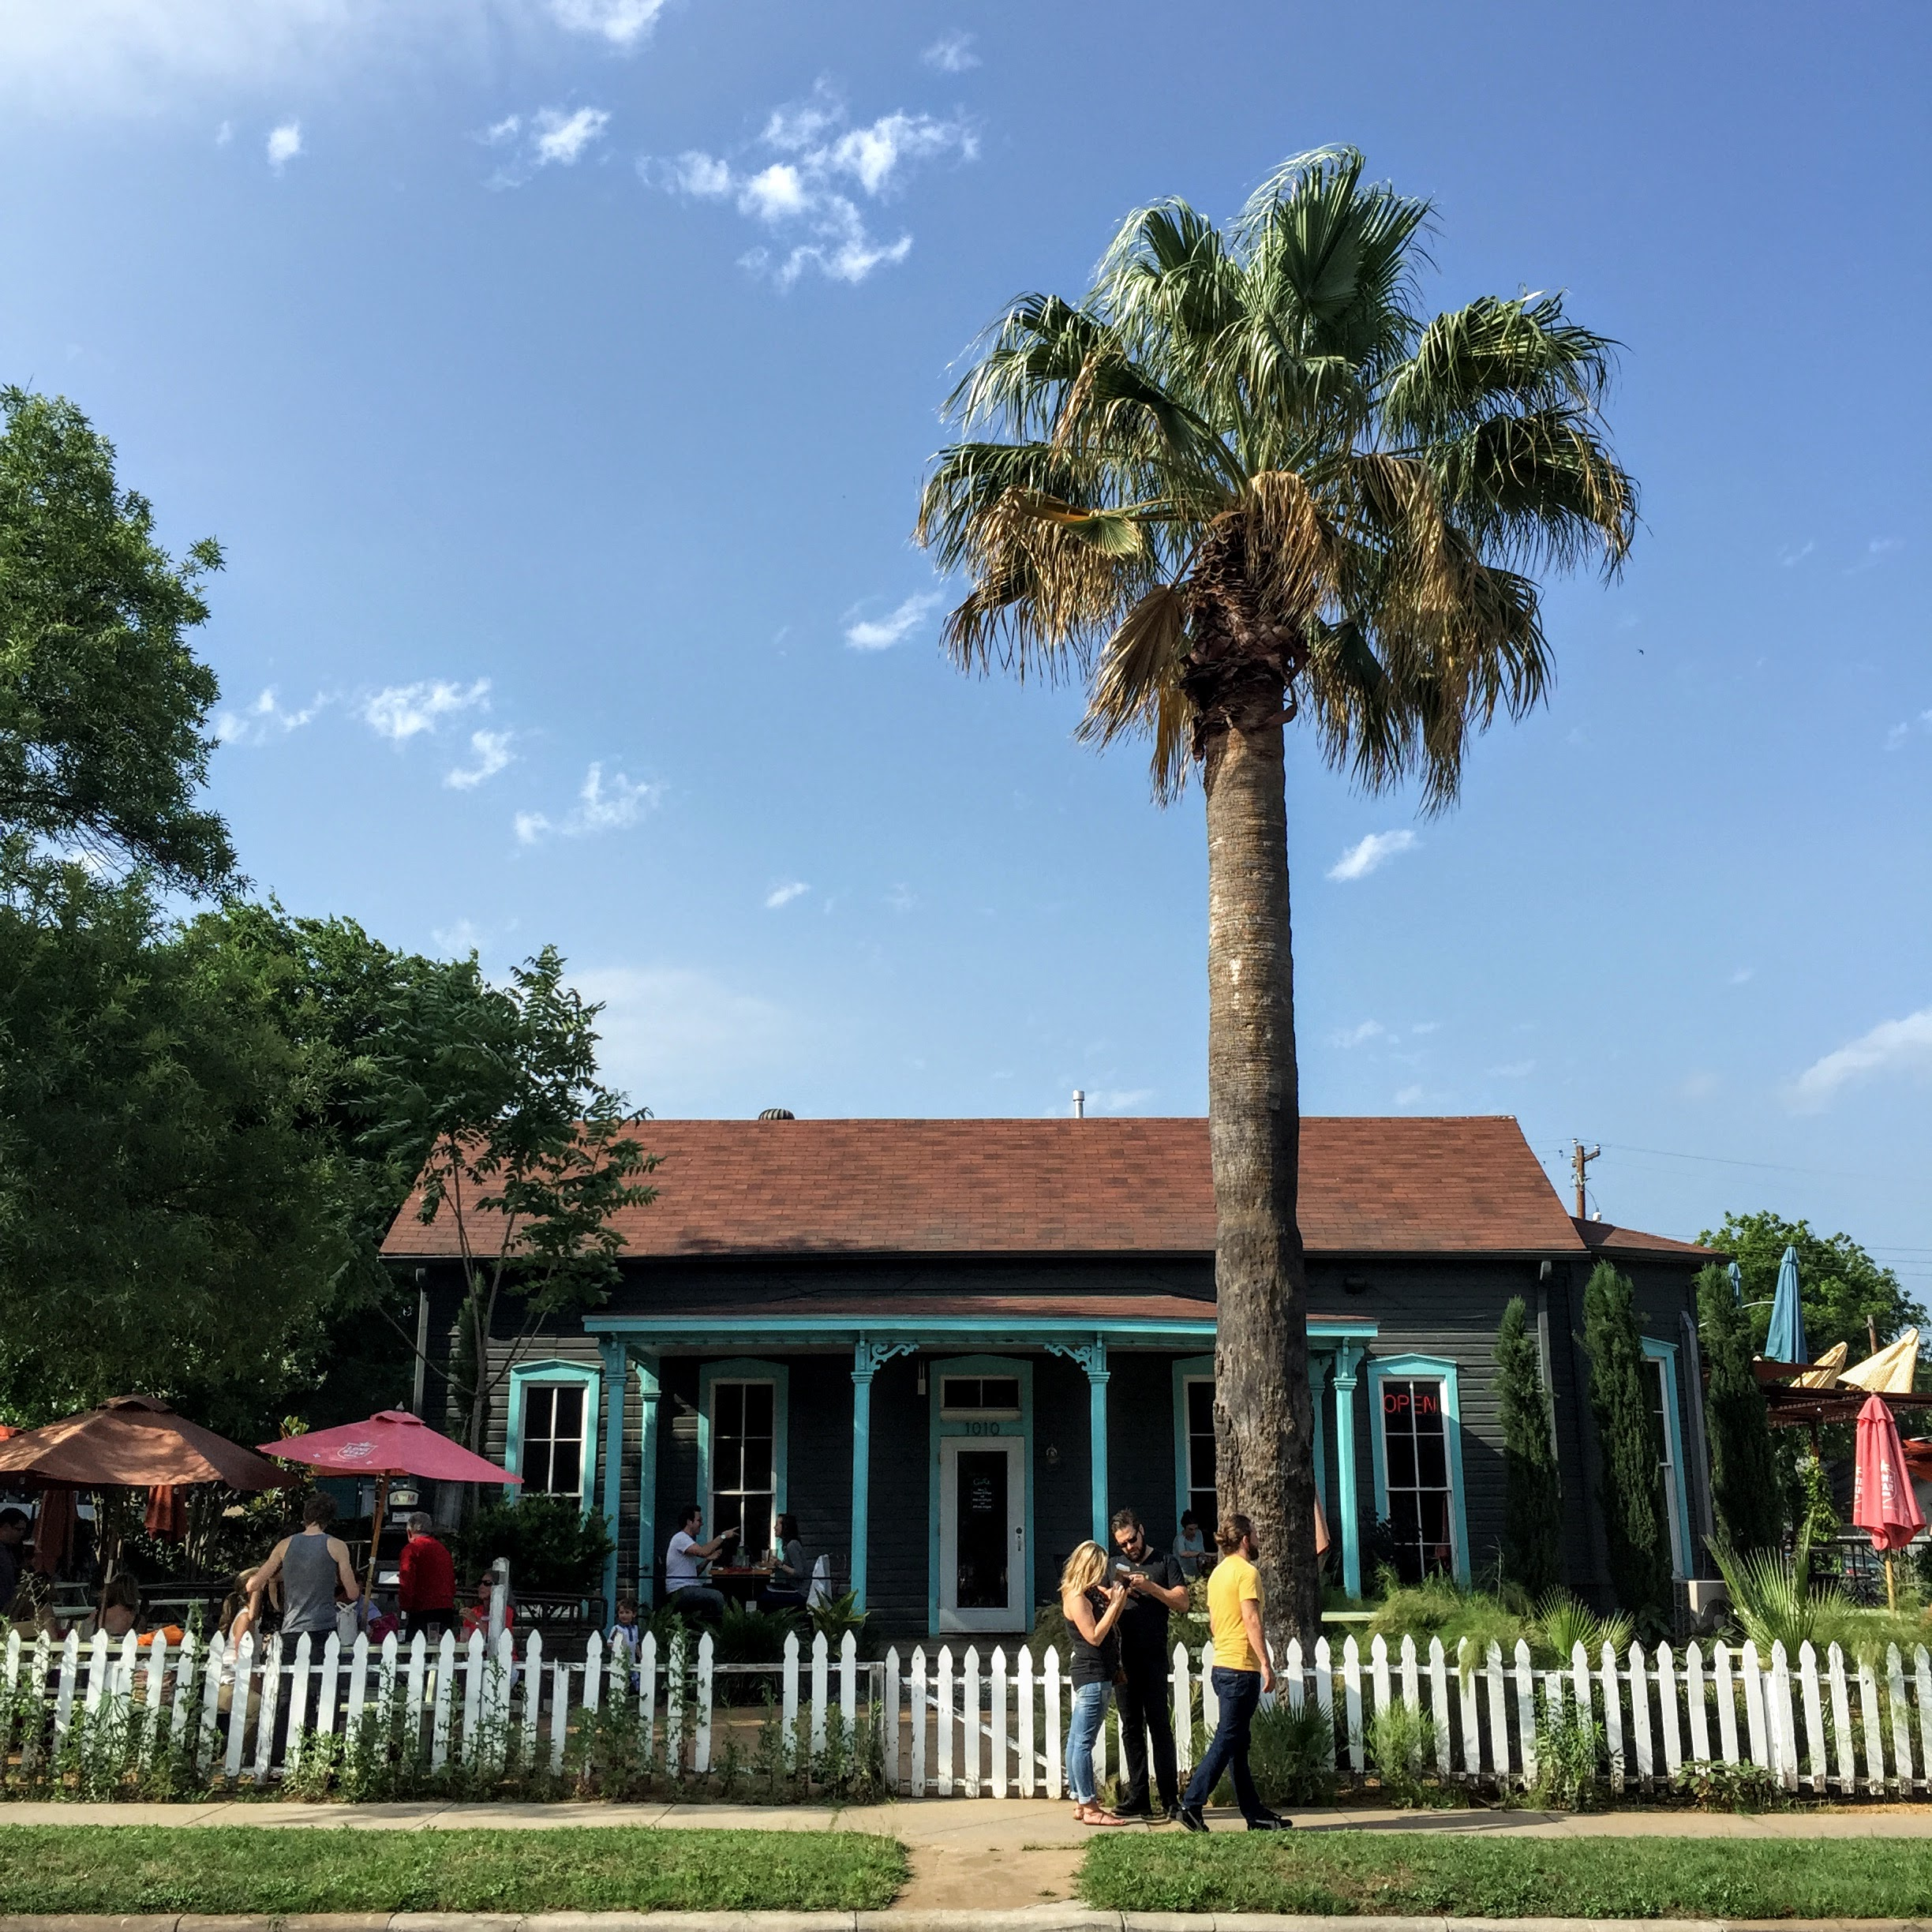 Cenote ( LINK ) - great neighborhood cafe with ample outdoor seating